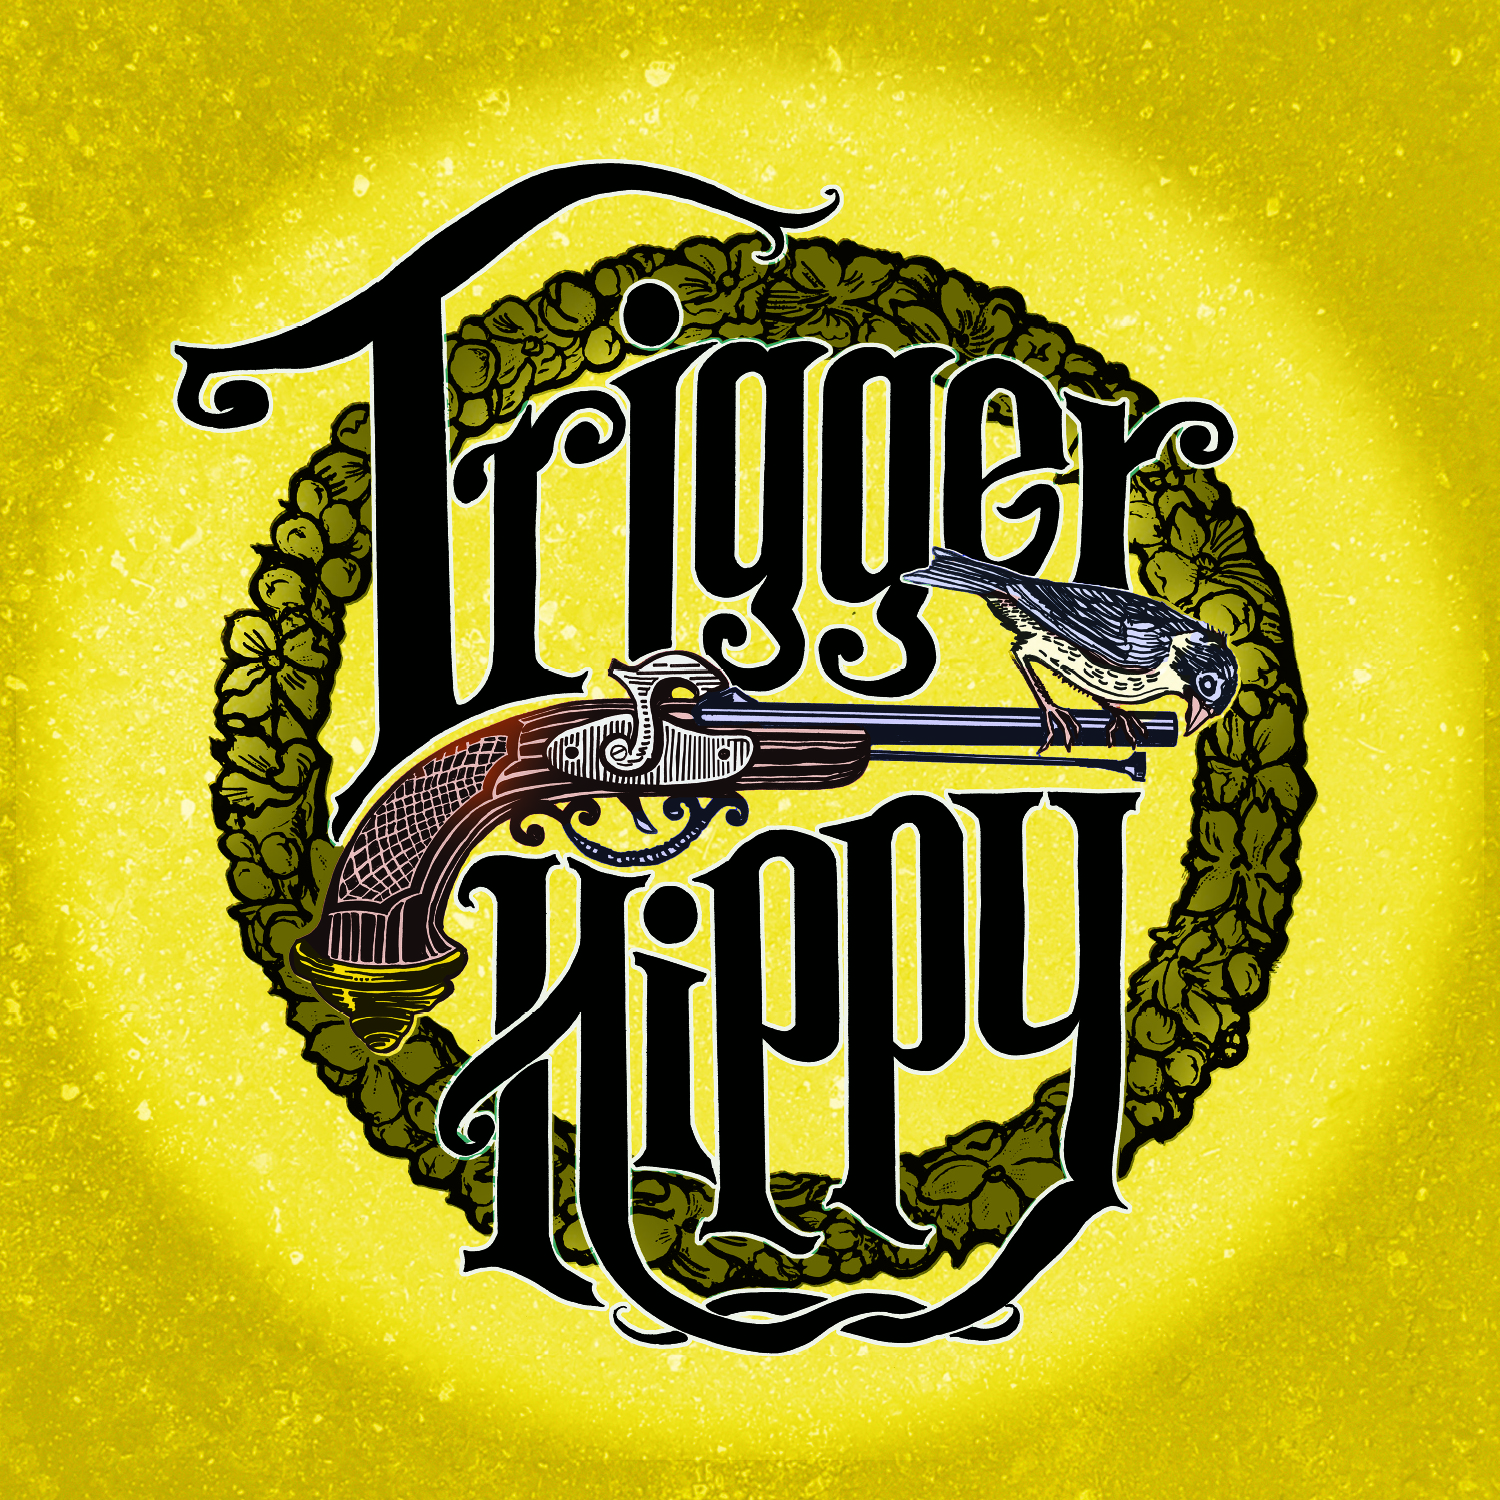 Trigger Hippy - Trigger Hippy - Limited Edition 10 Inch Vinyl EP